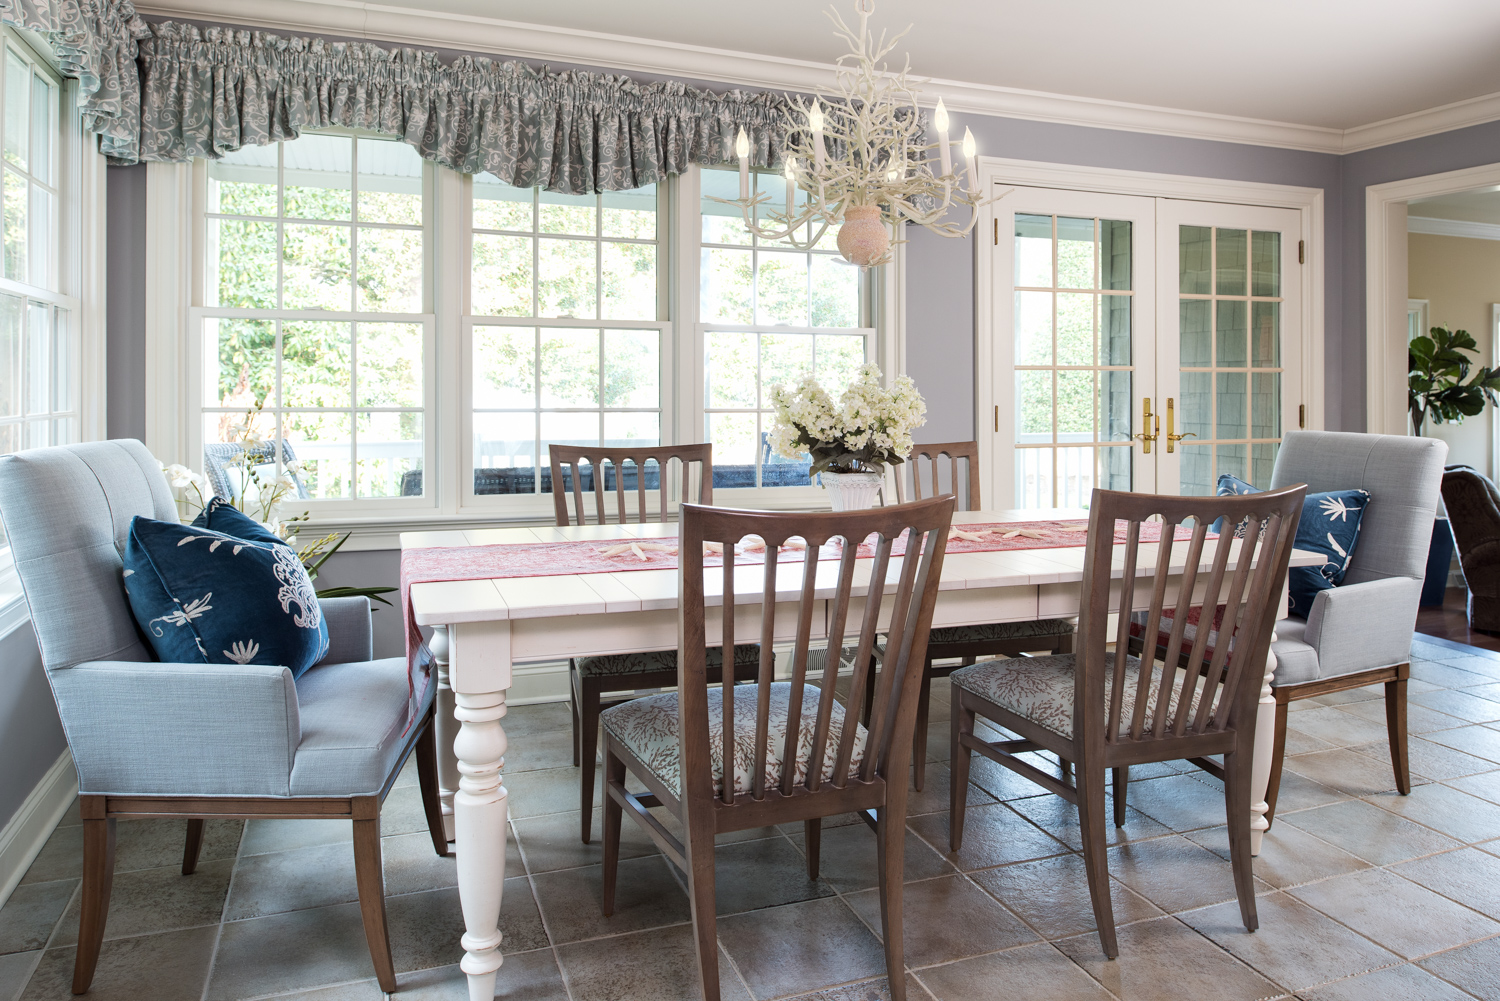 interior-design-color-window-treatments-franklin-lakes-new-jersey-10.jpg